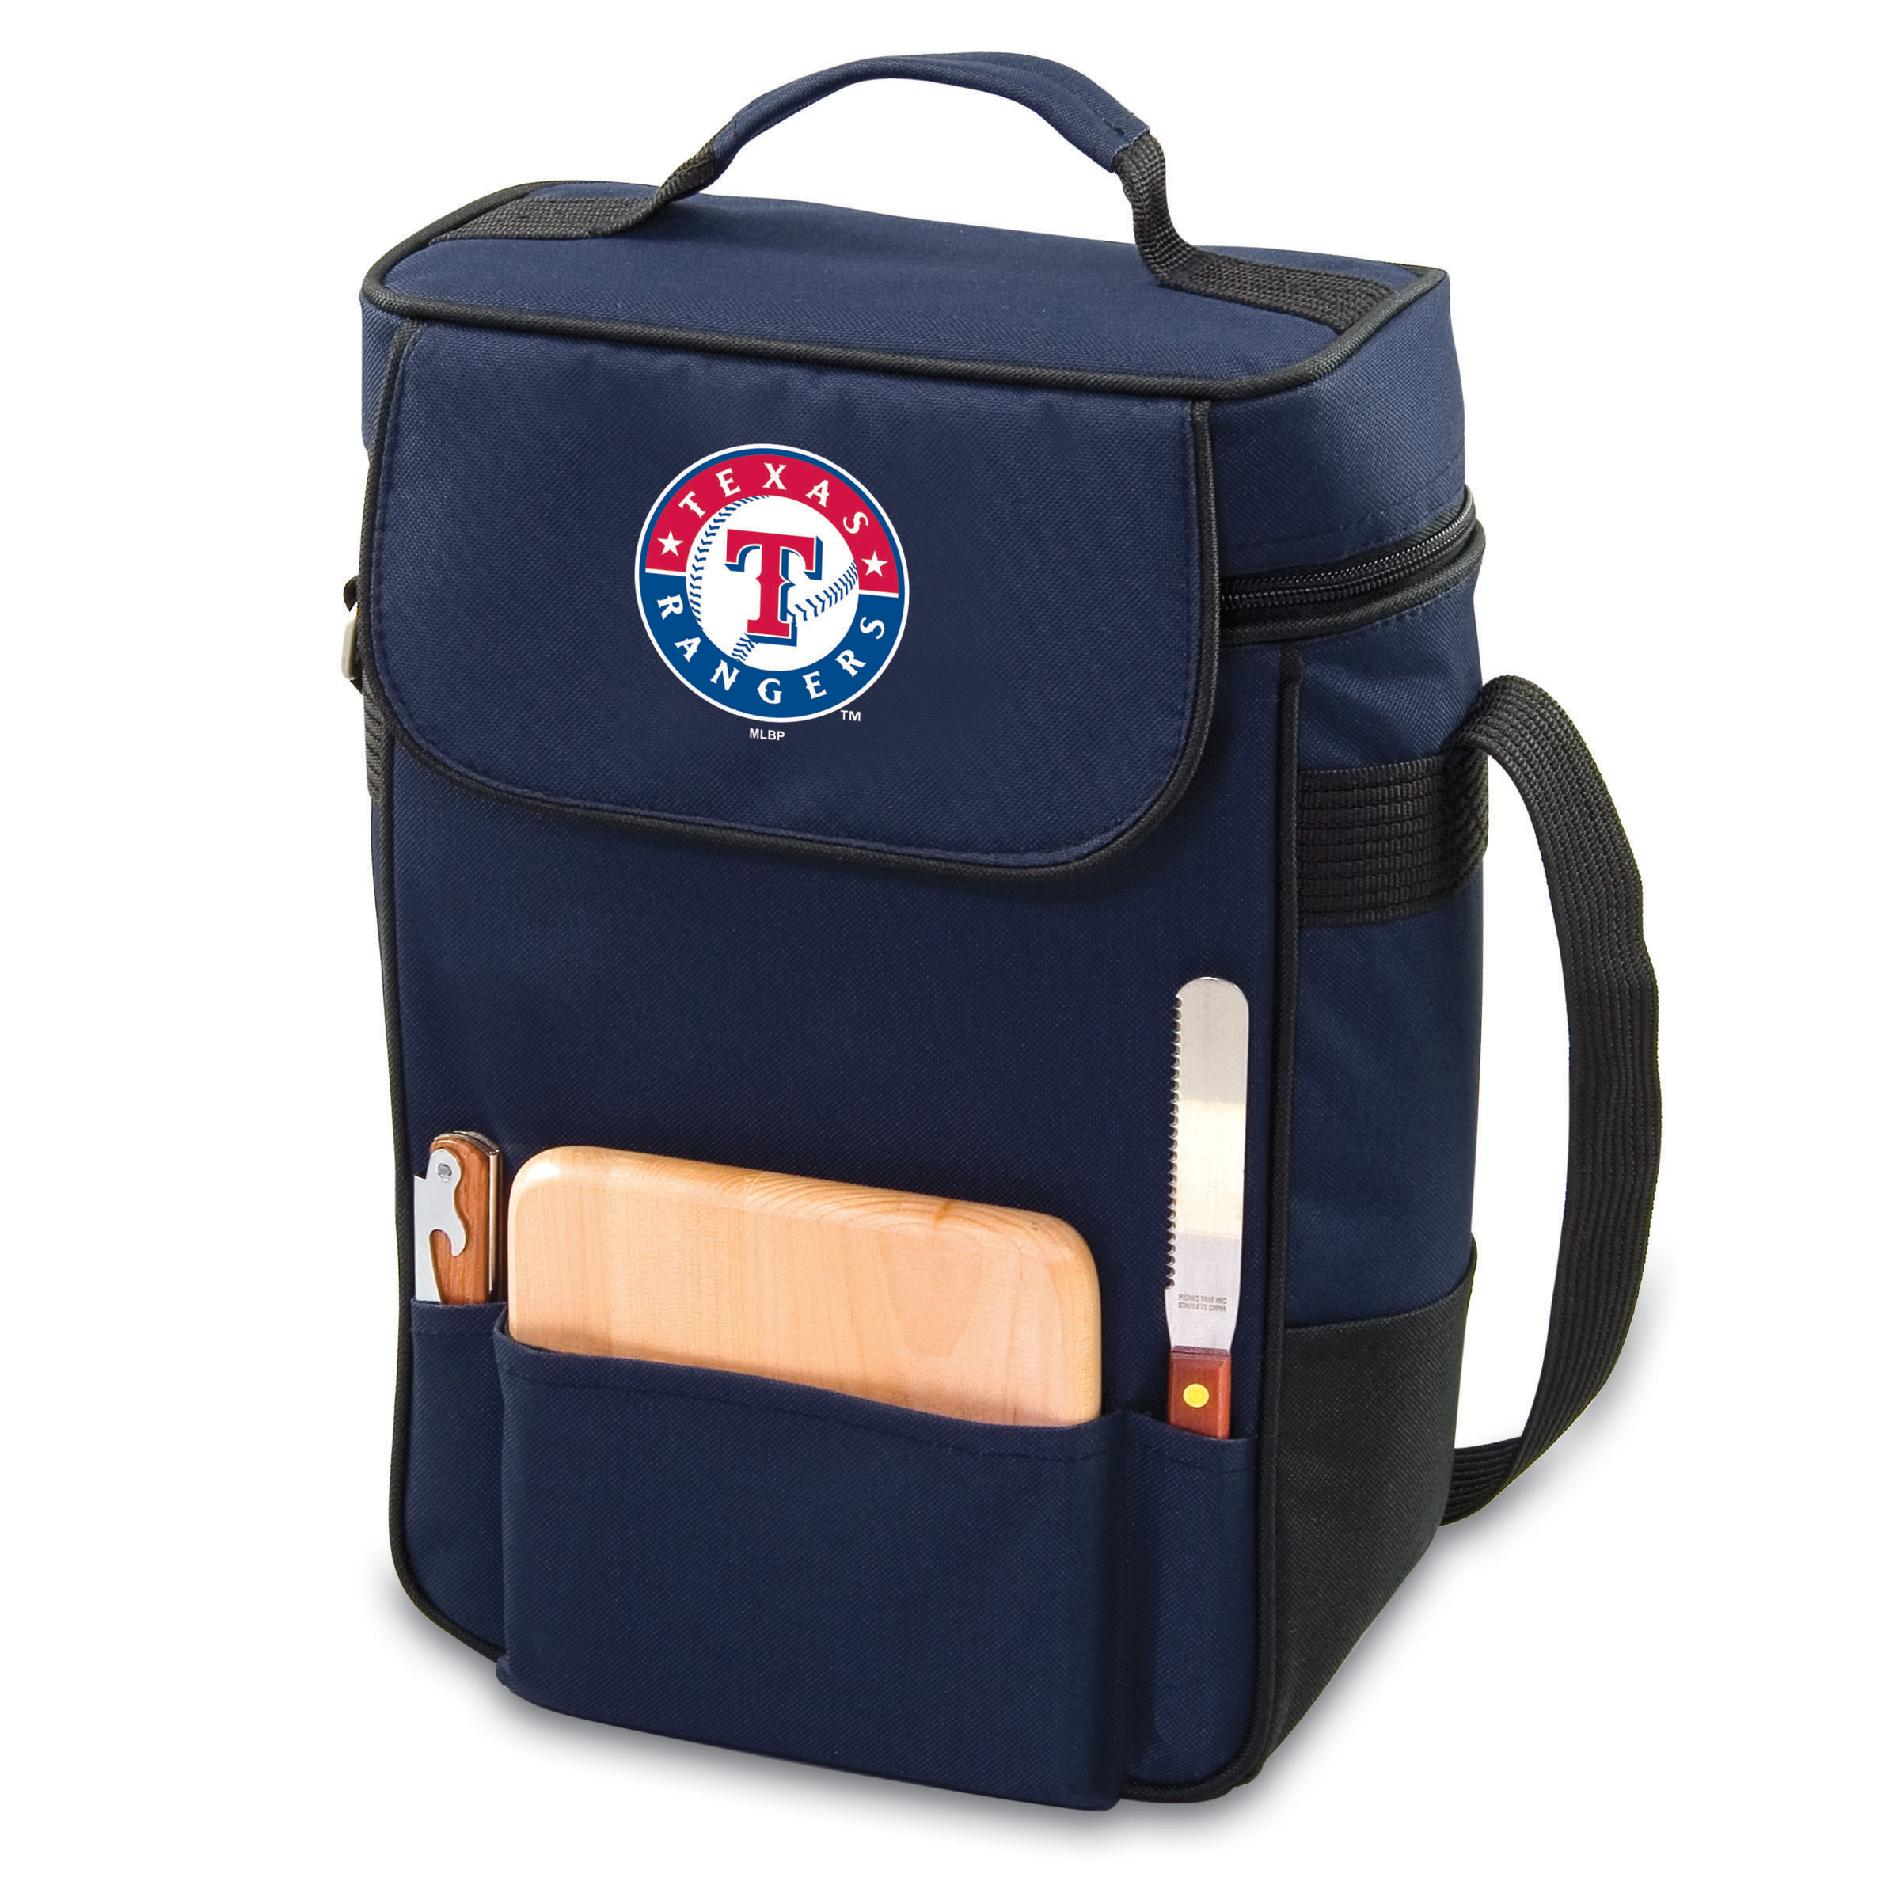 Image of Picnic Time Texas Rangers Duet Wine & Cheese Tote, wine